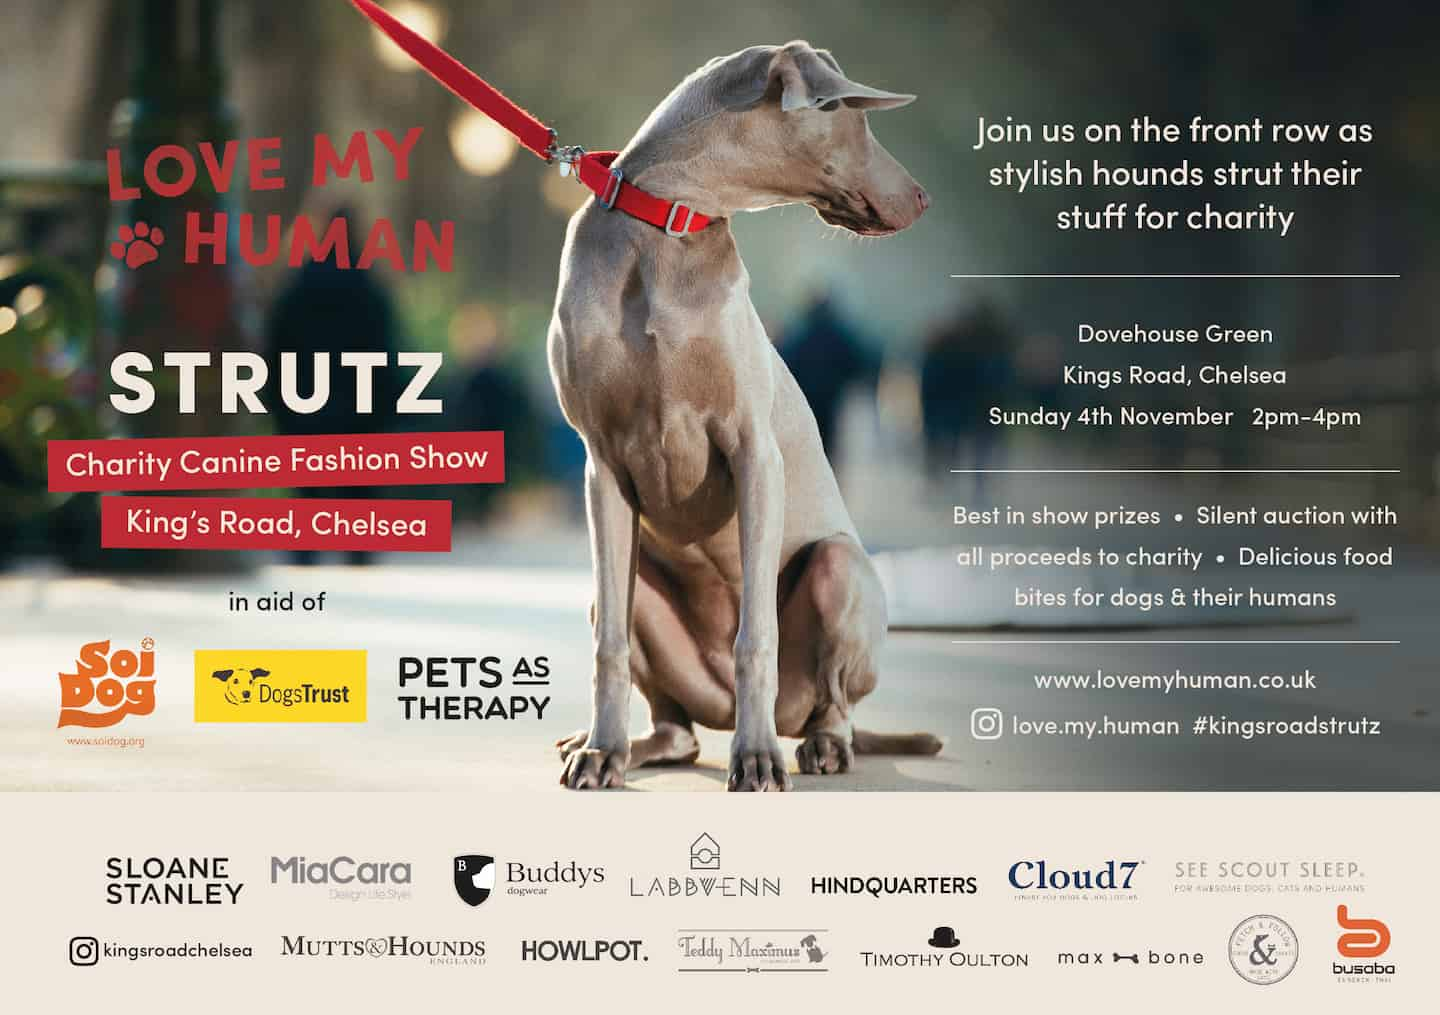 STRUTZ Canine Fashion Show